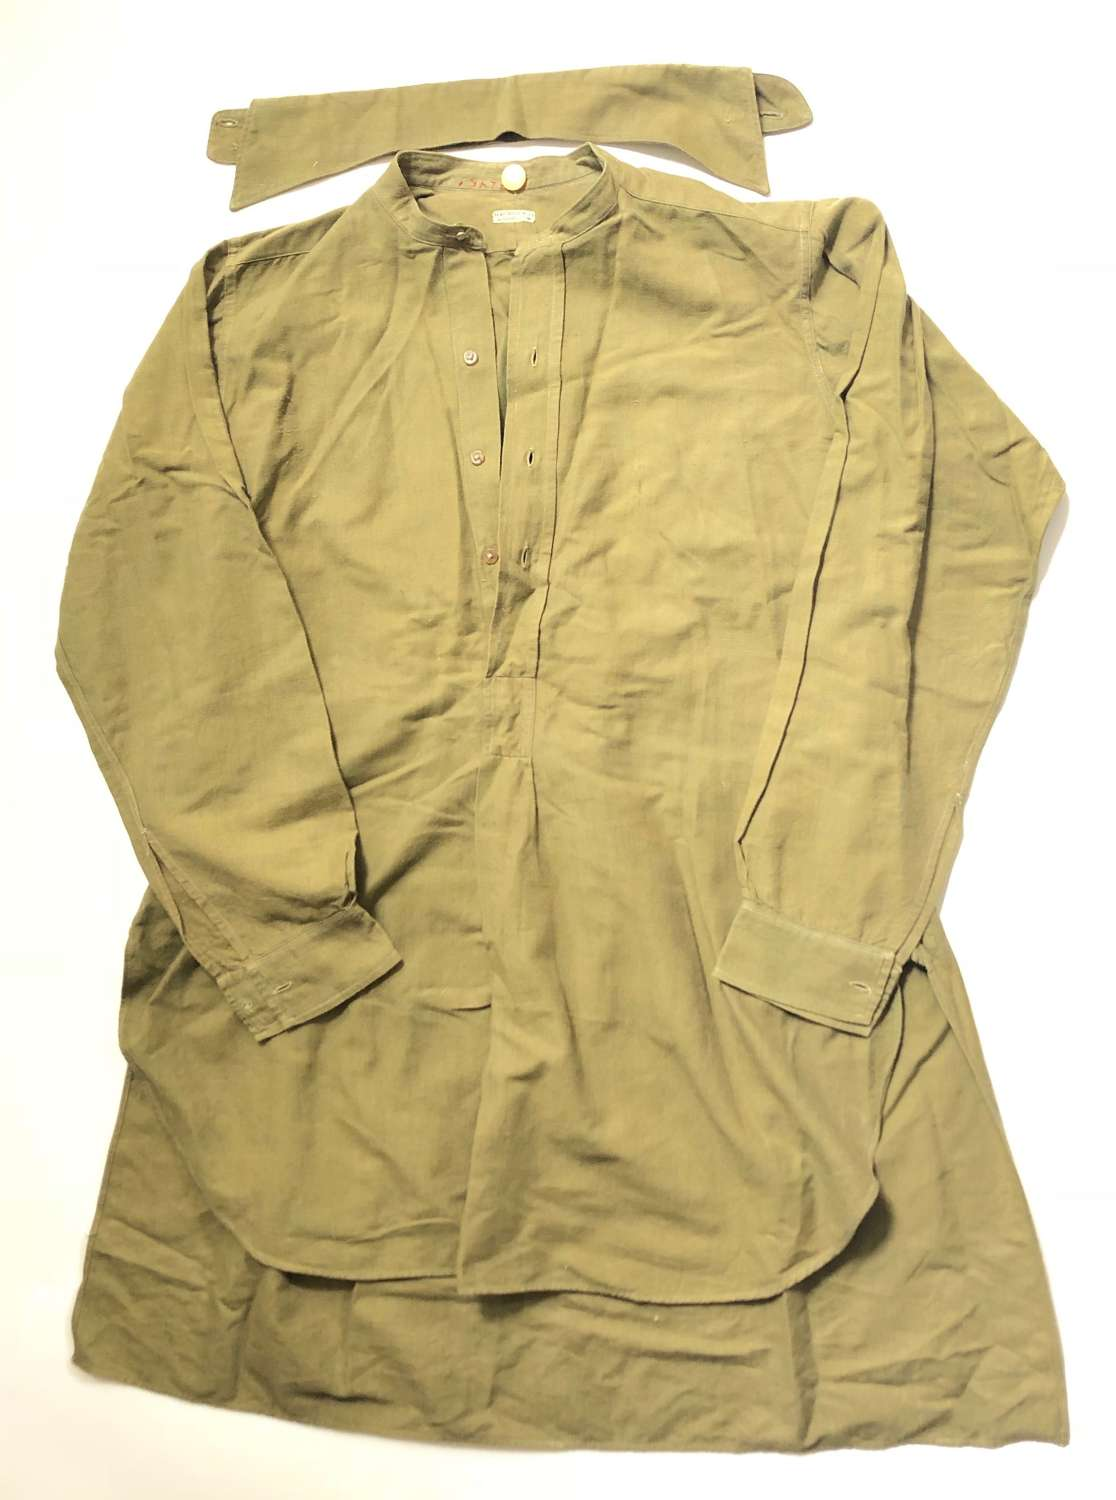 WW1 Period British Army Officer's Shirt.